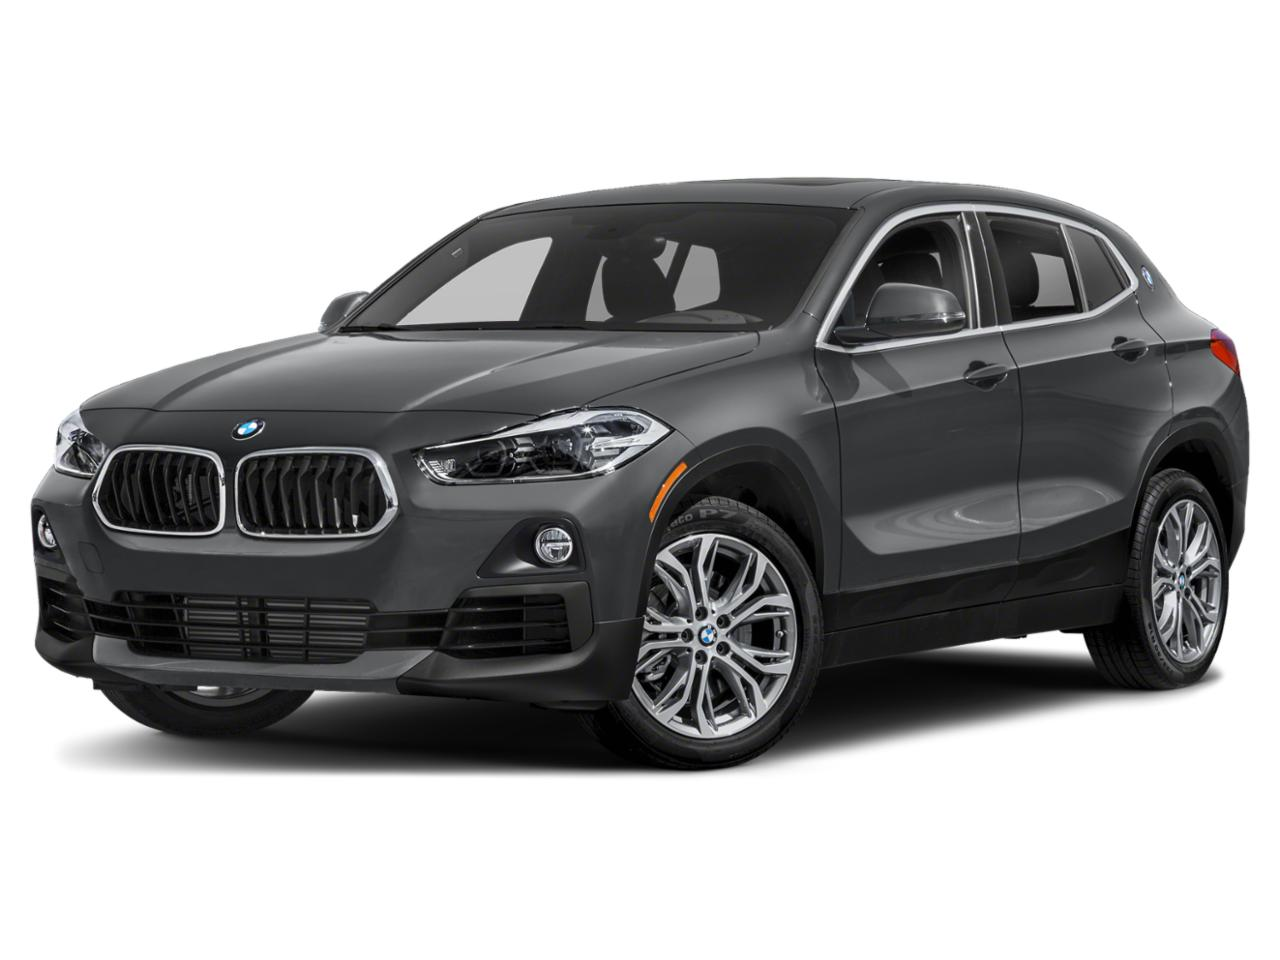 2018 BMW X2 xDrive28i Vehicle Photo in Muncy, PA 17756